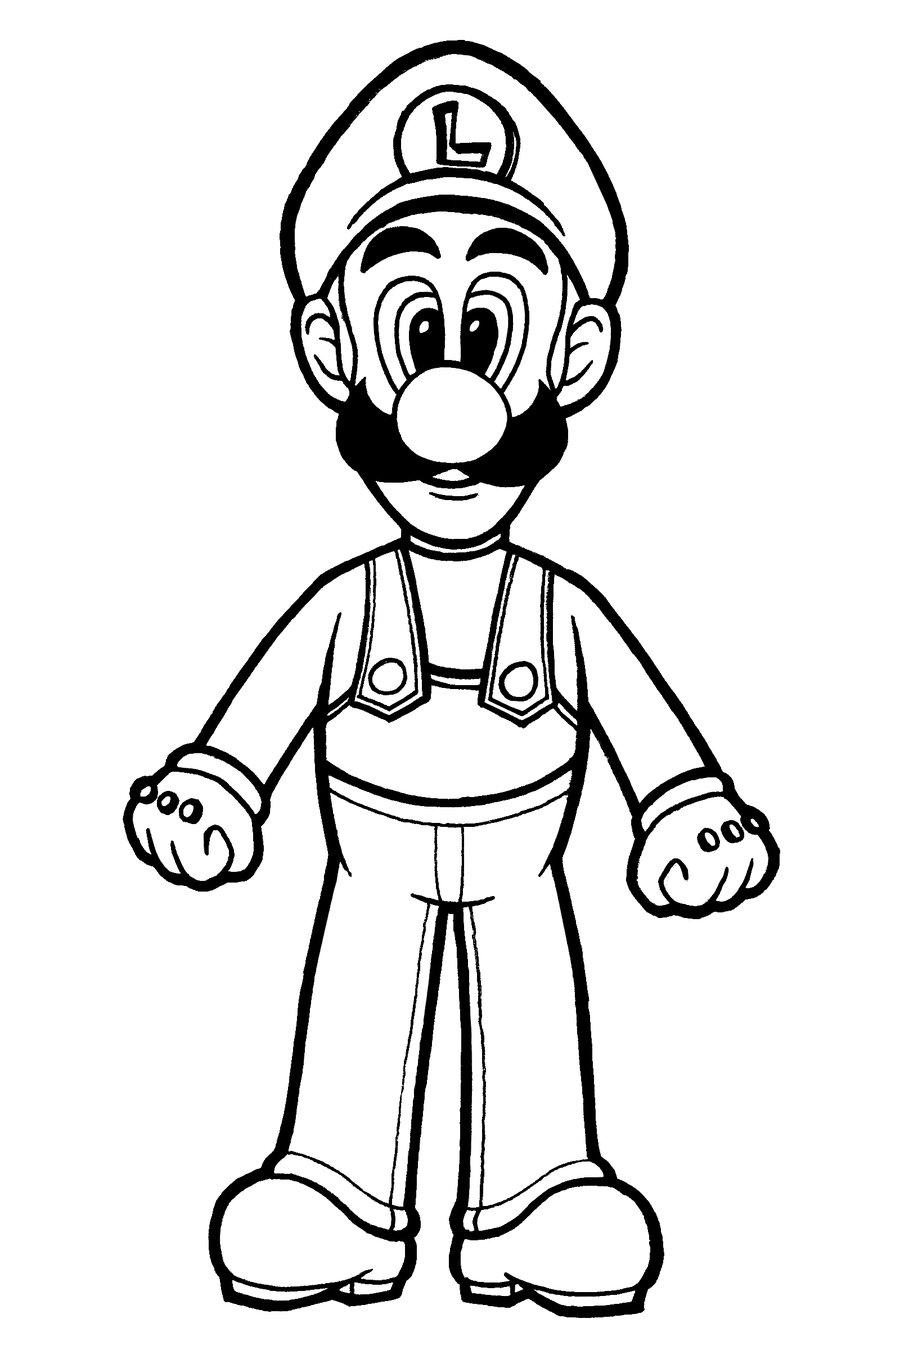 luigi coloring pages printable - photo#20